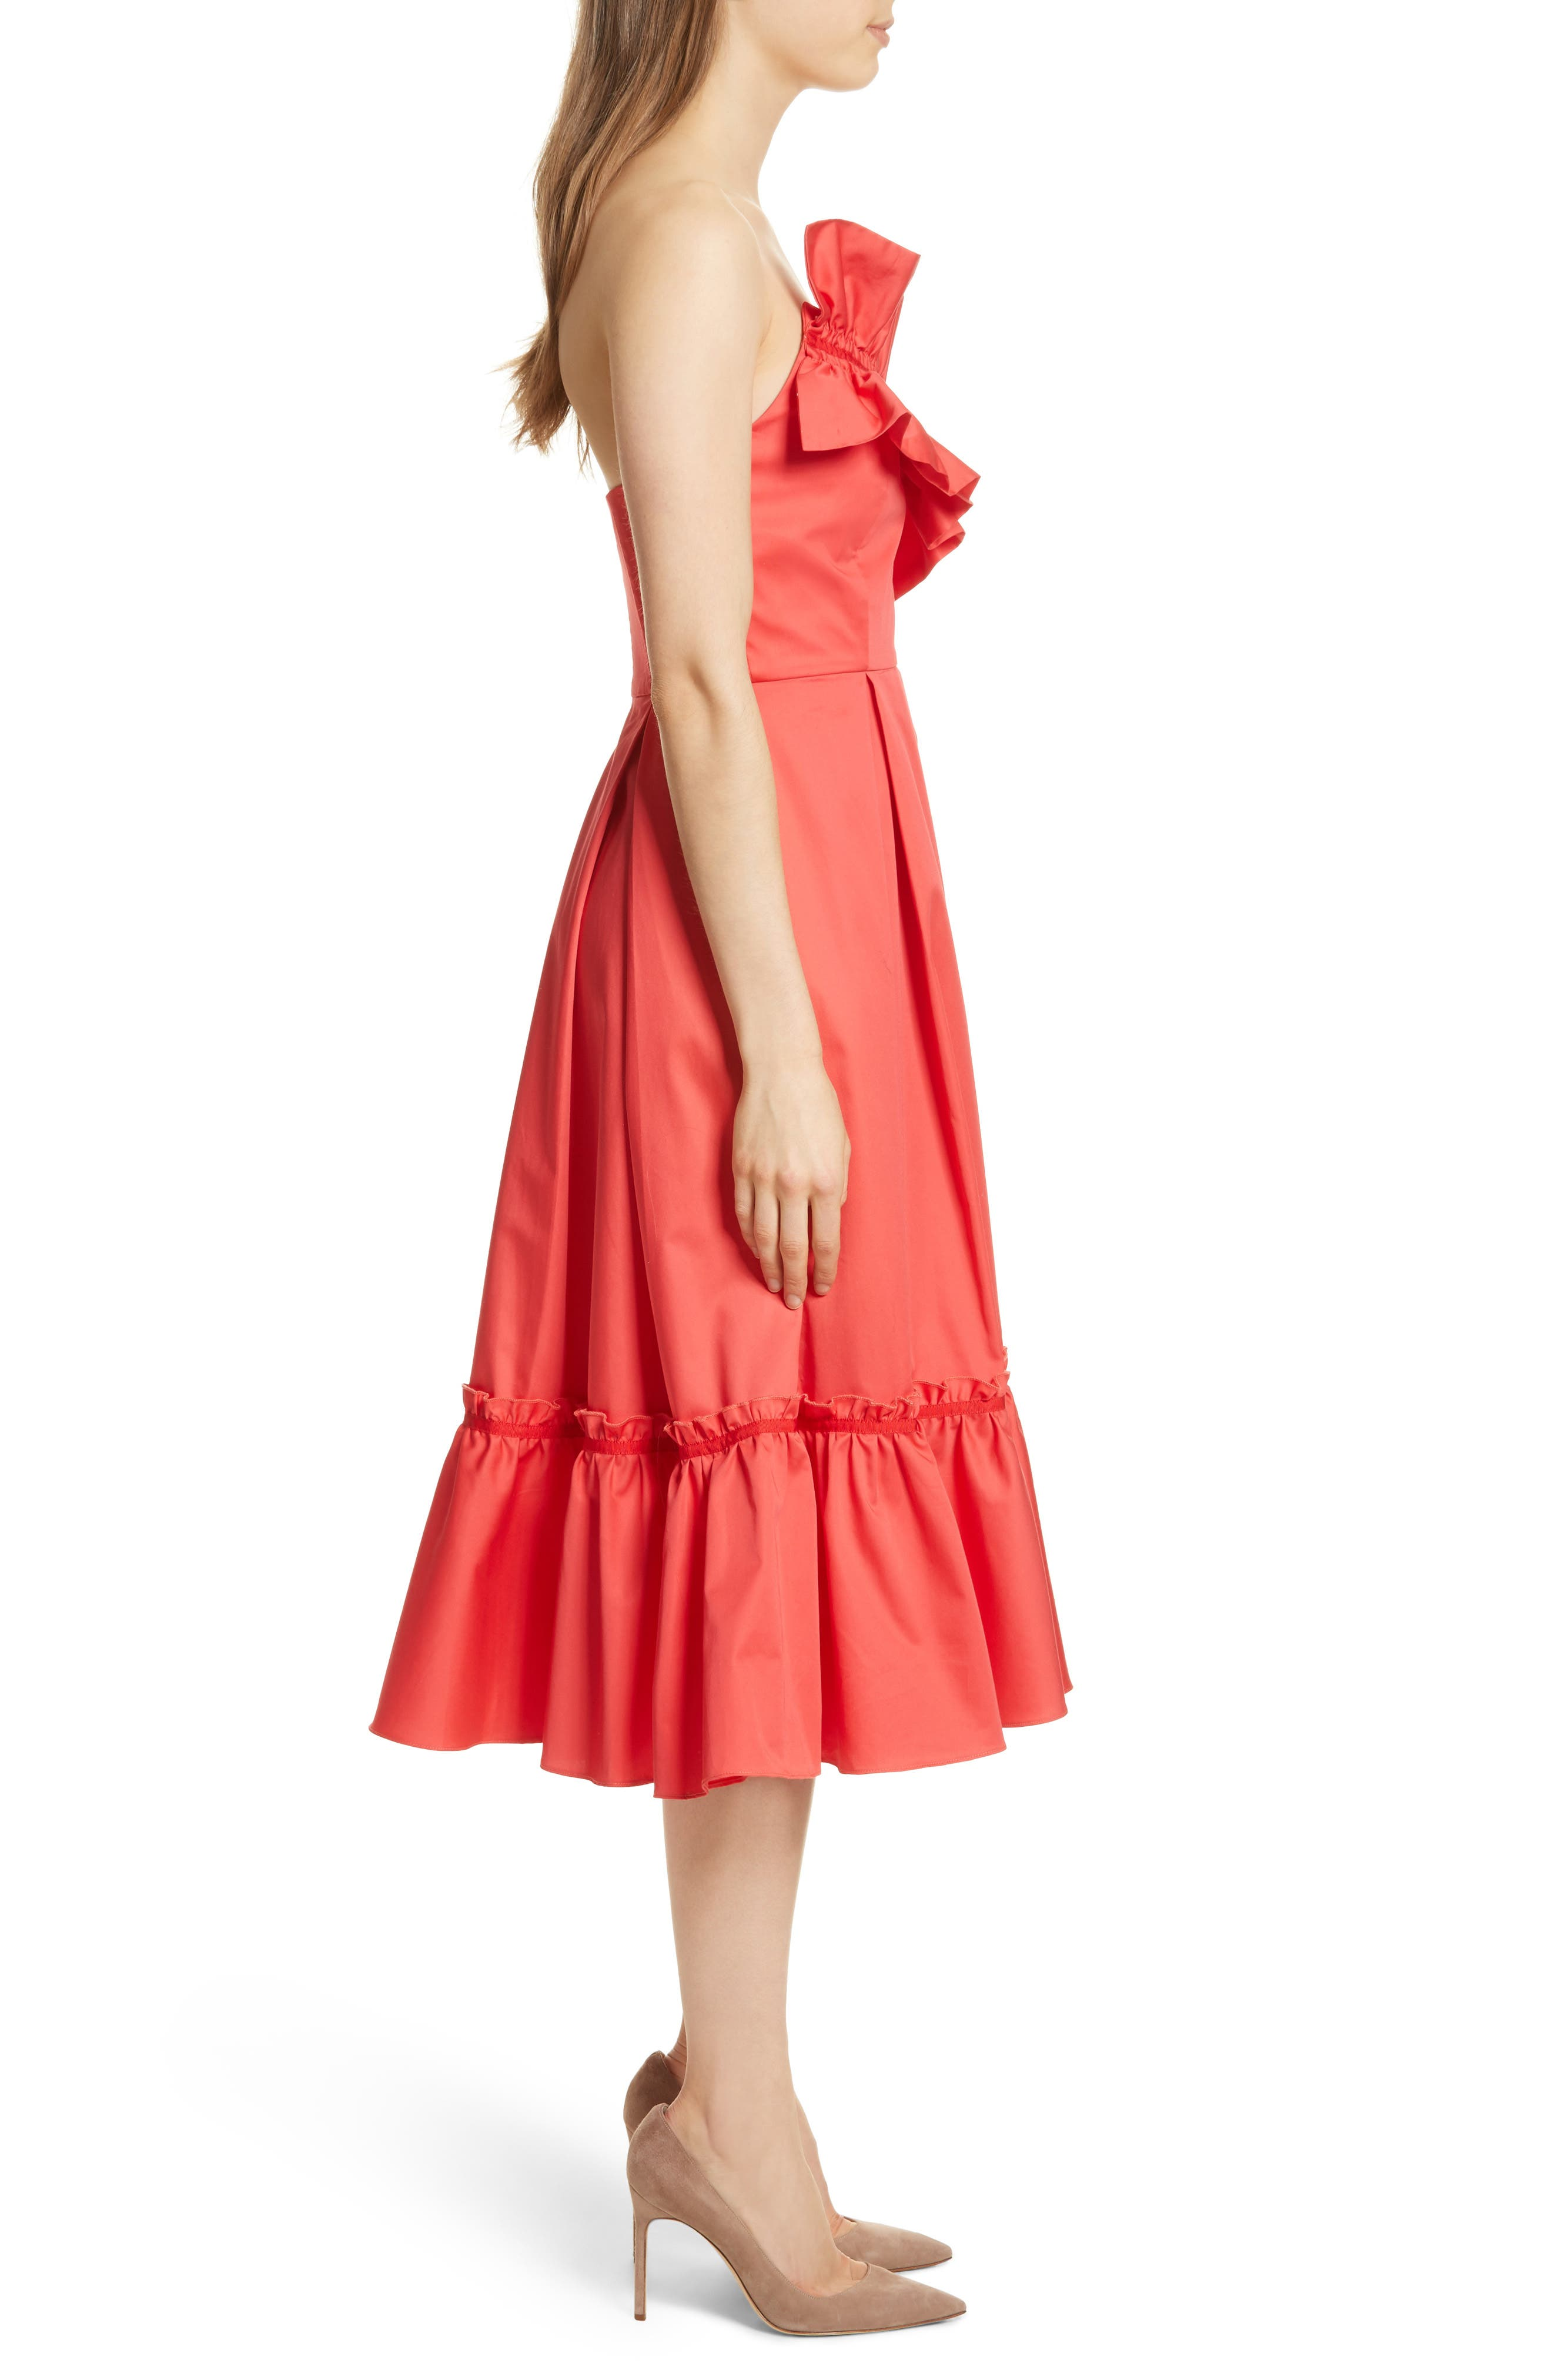 Prose & Poetry Harlow Ruffle Trim Strapless Dress,                             Alternate thumbnail 3, color,                             Watermelon